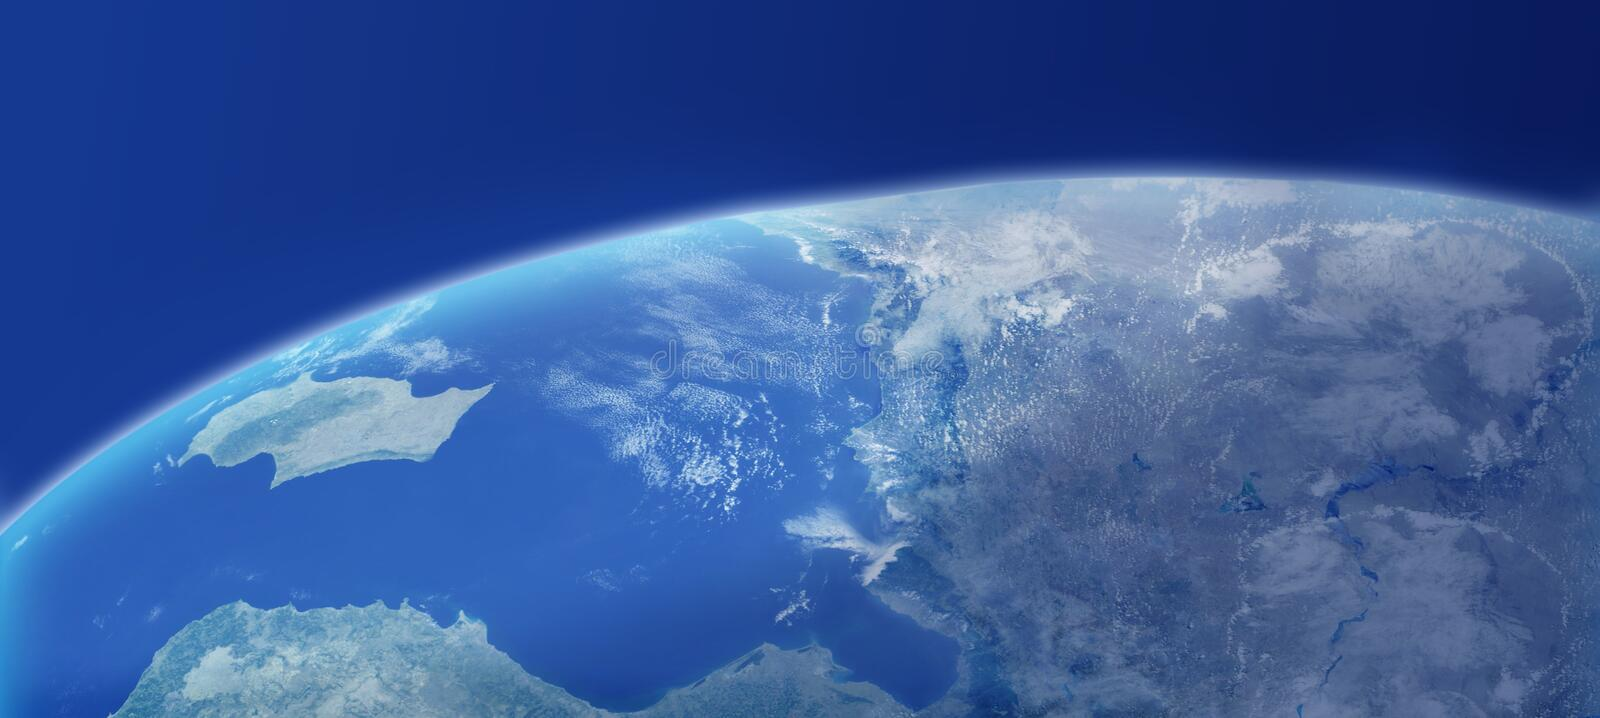 Earth Closeup With Atmosphere royalty free stock image